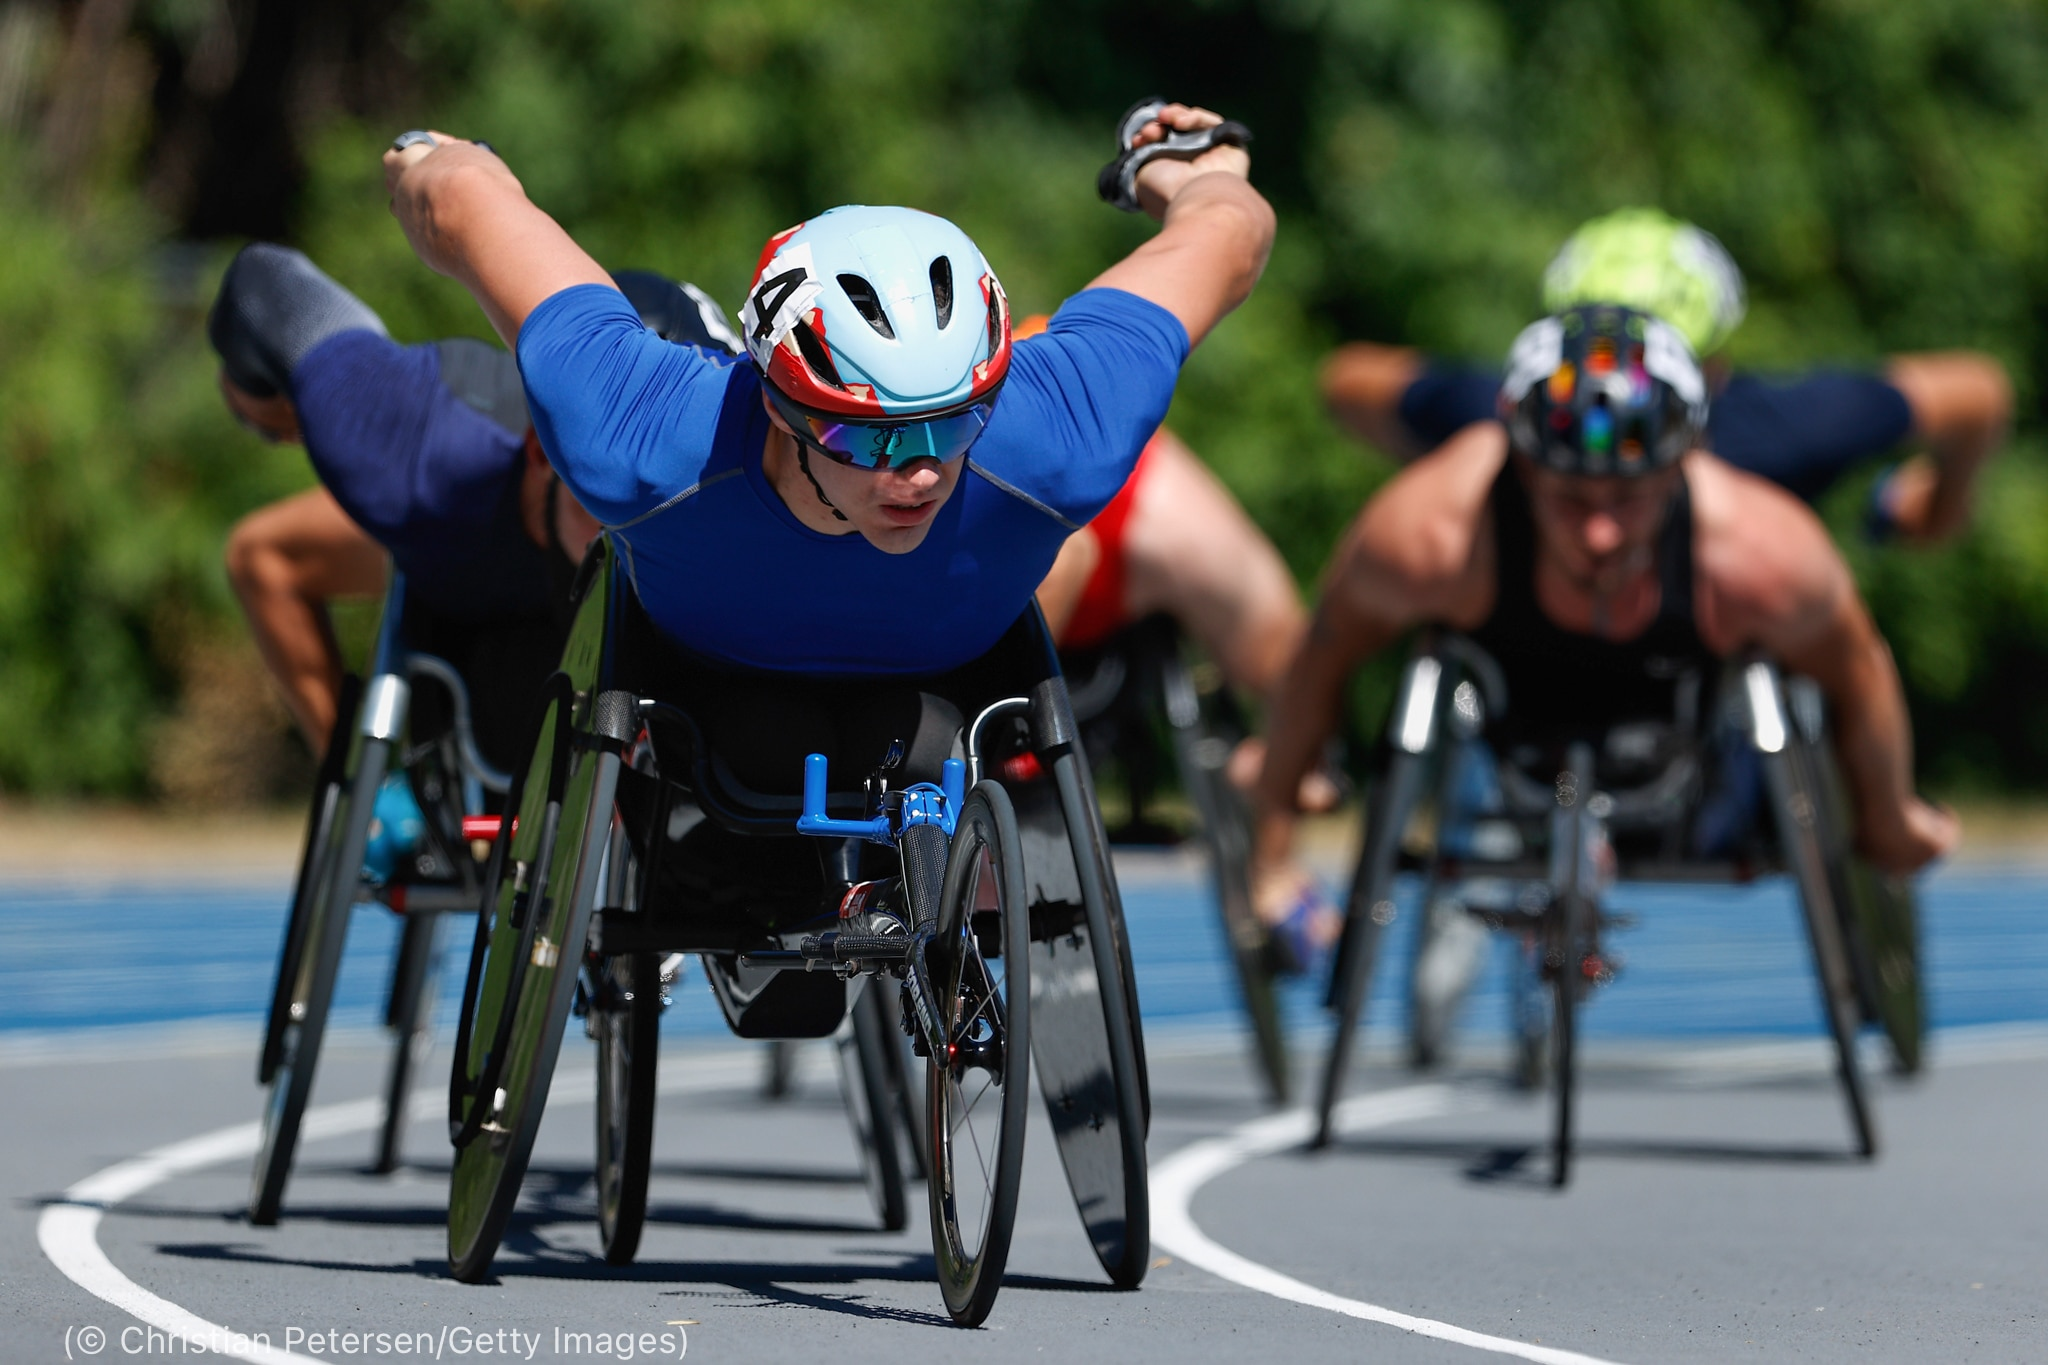 Men in wheelchairs racing on track (© Christian Petersen/Getty Images)